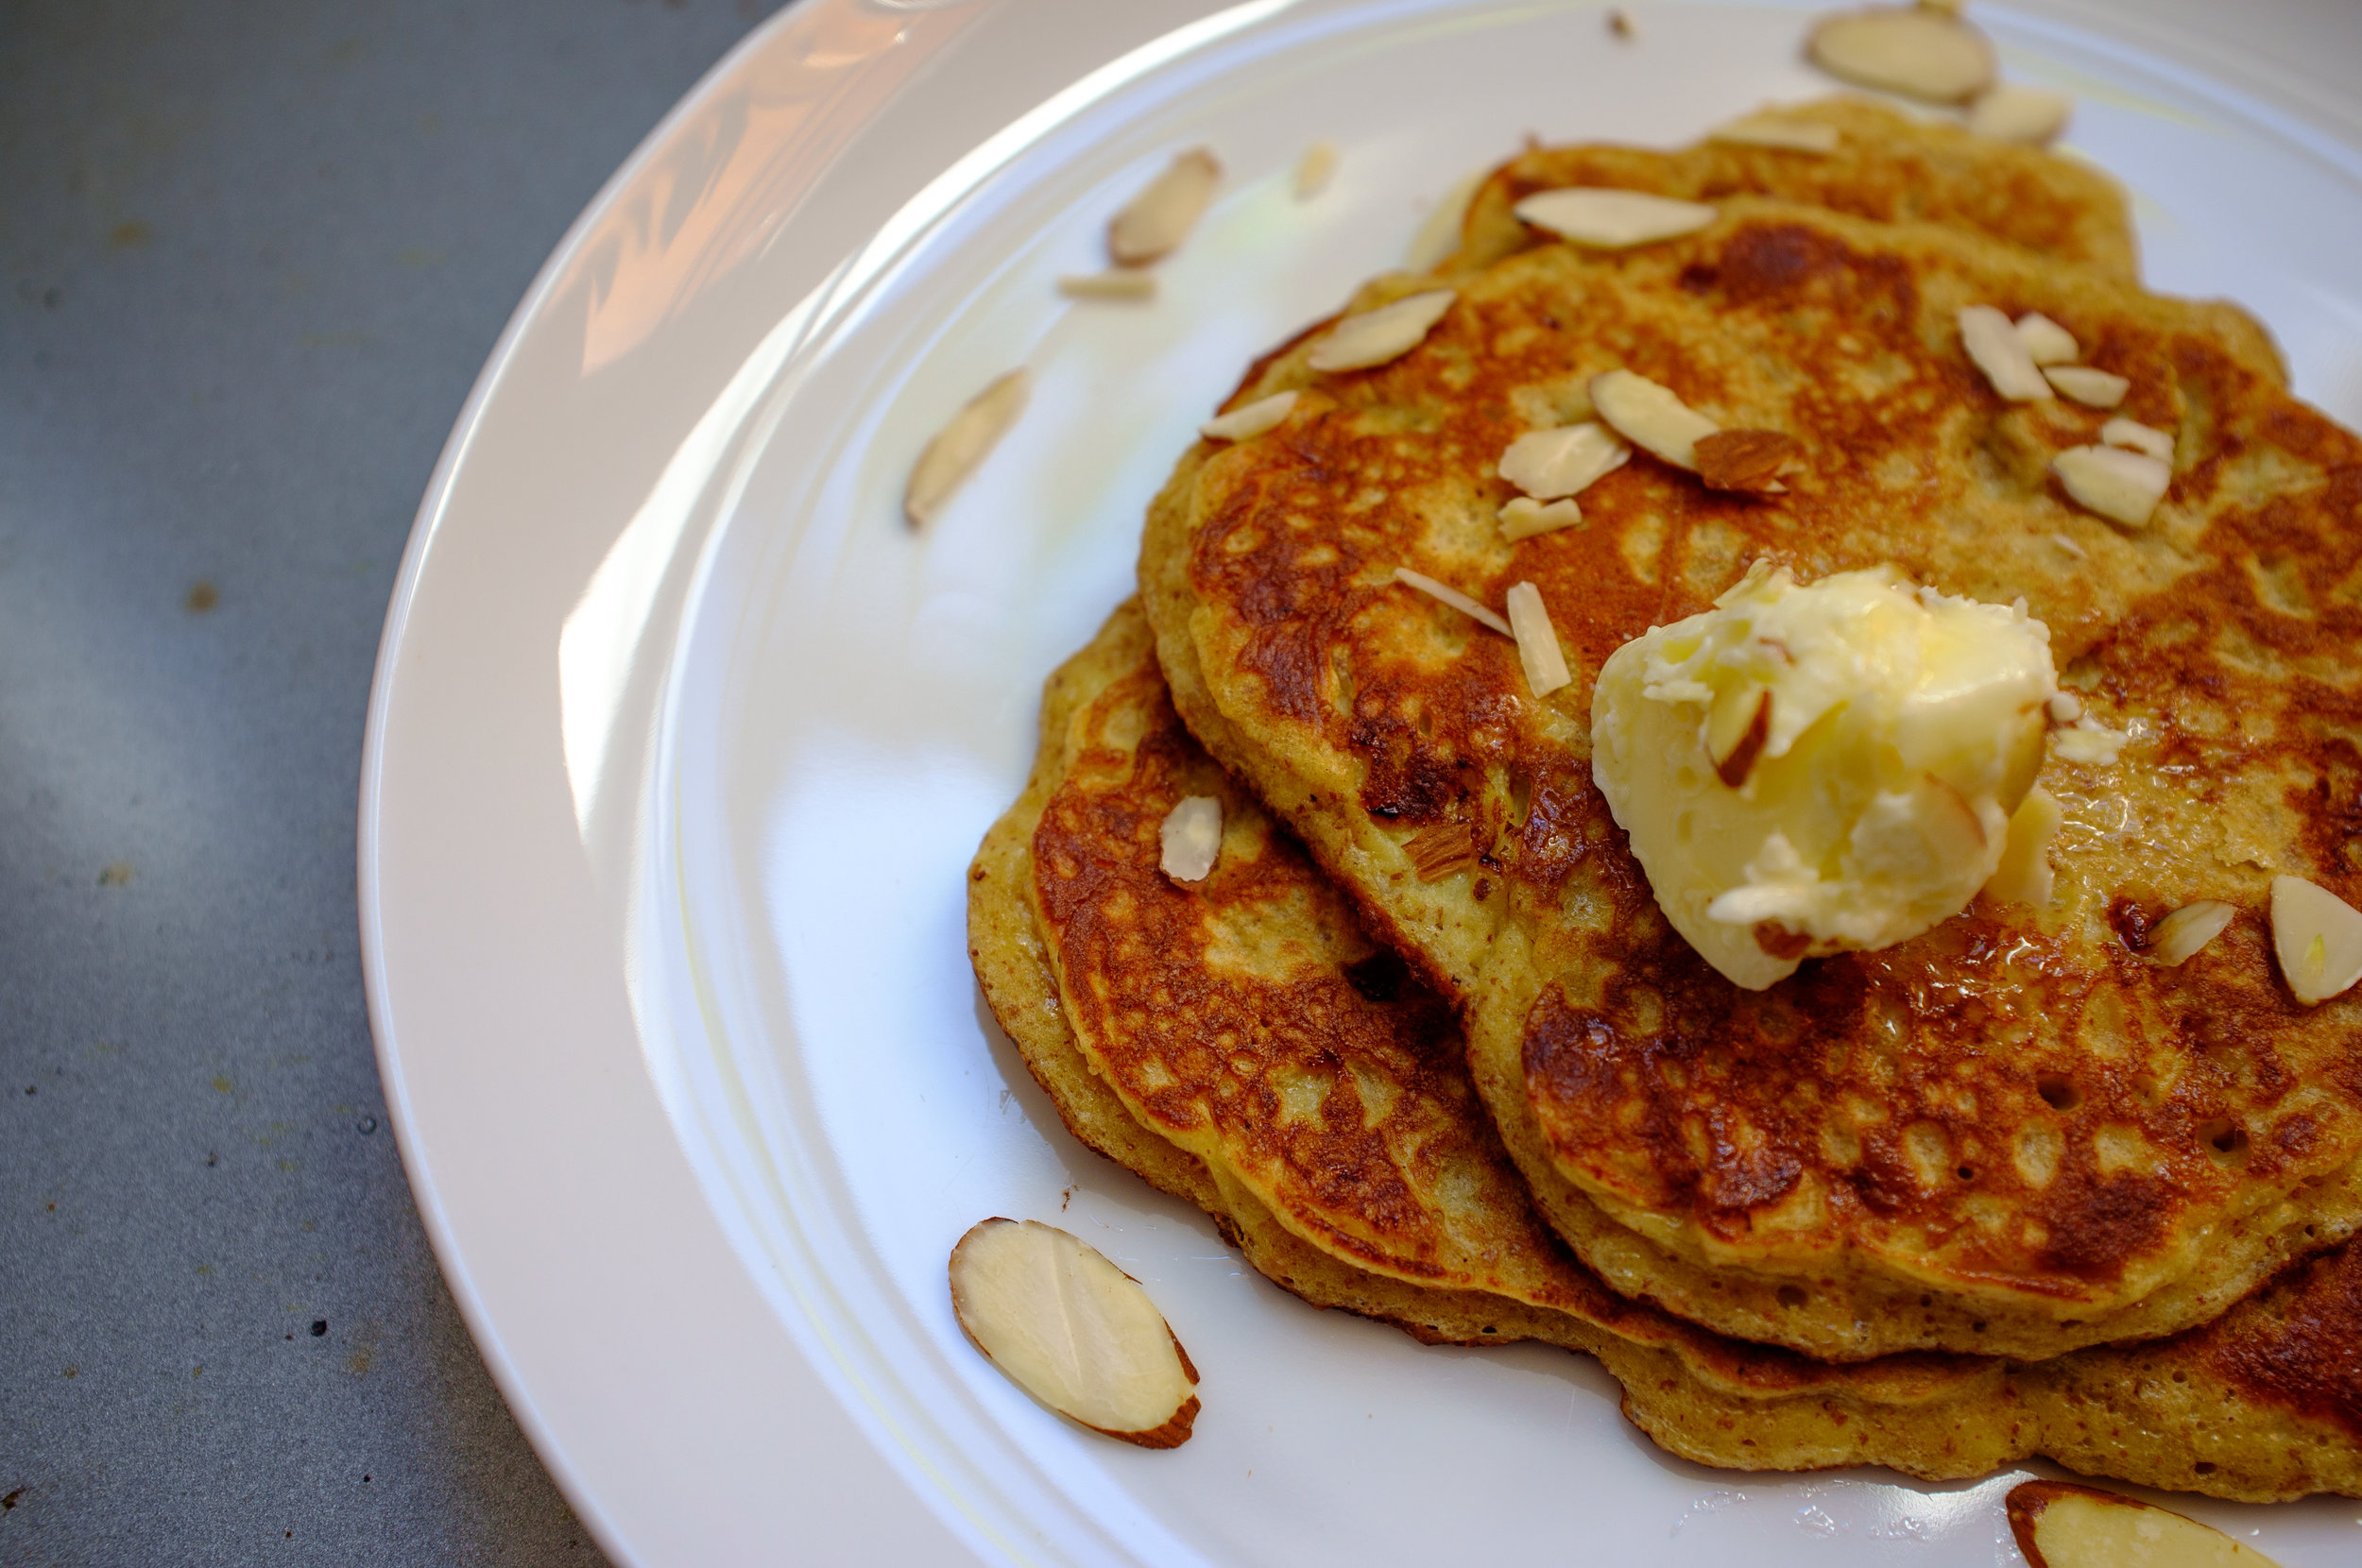 Paleo pancakes topped with butter and slivered almonds